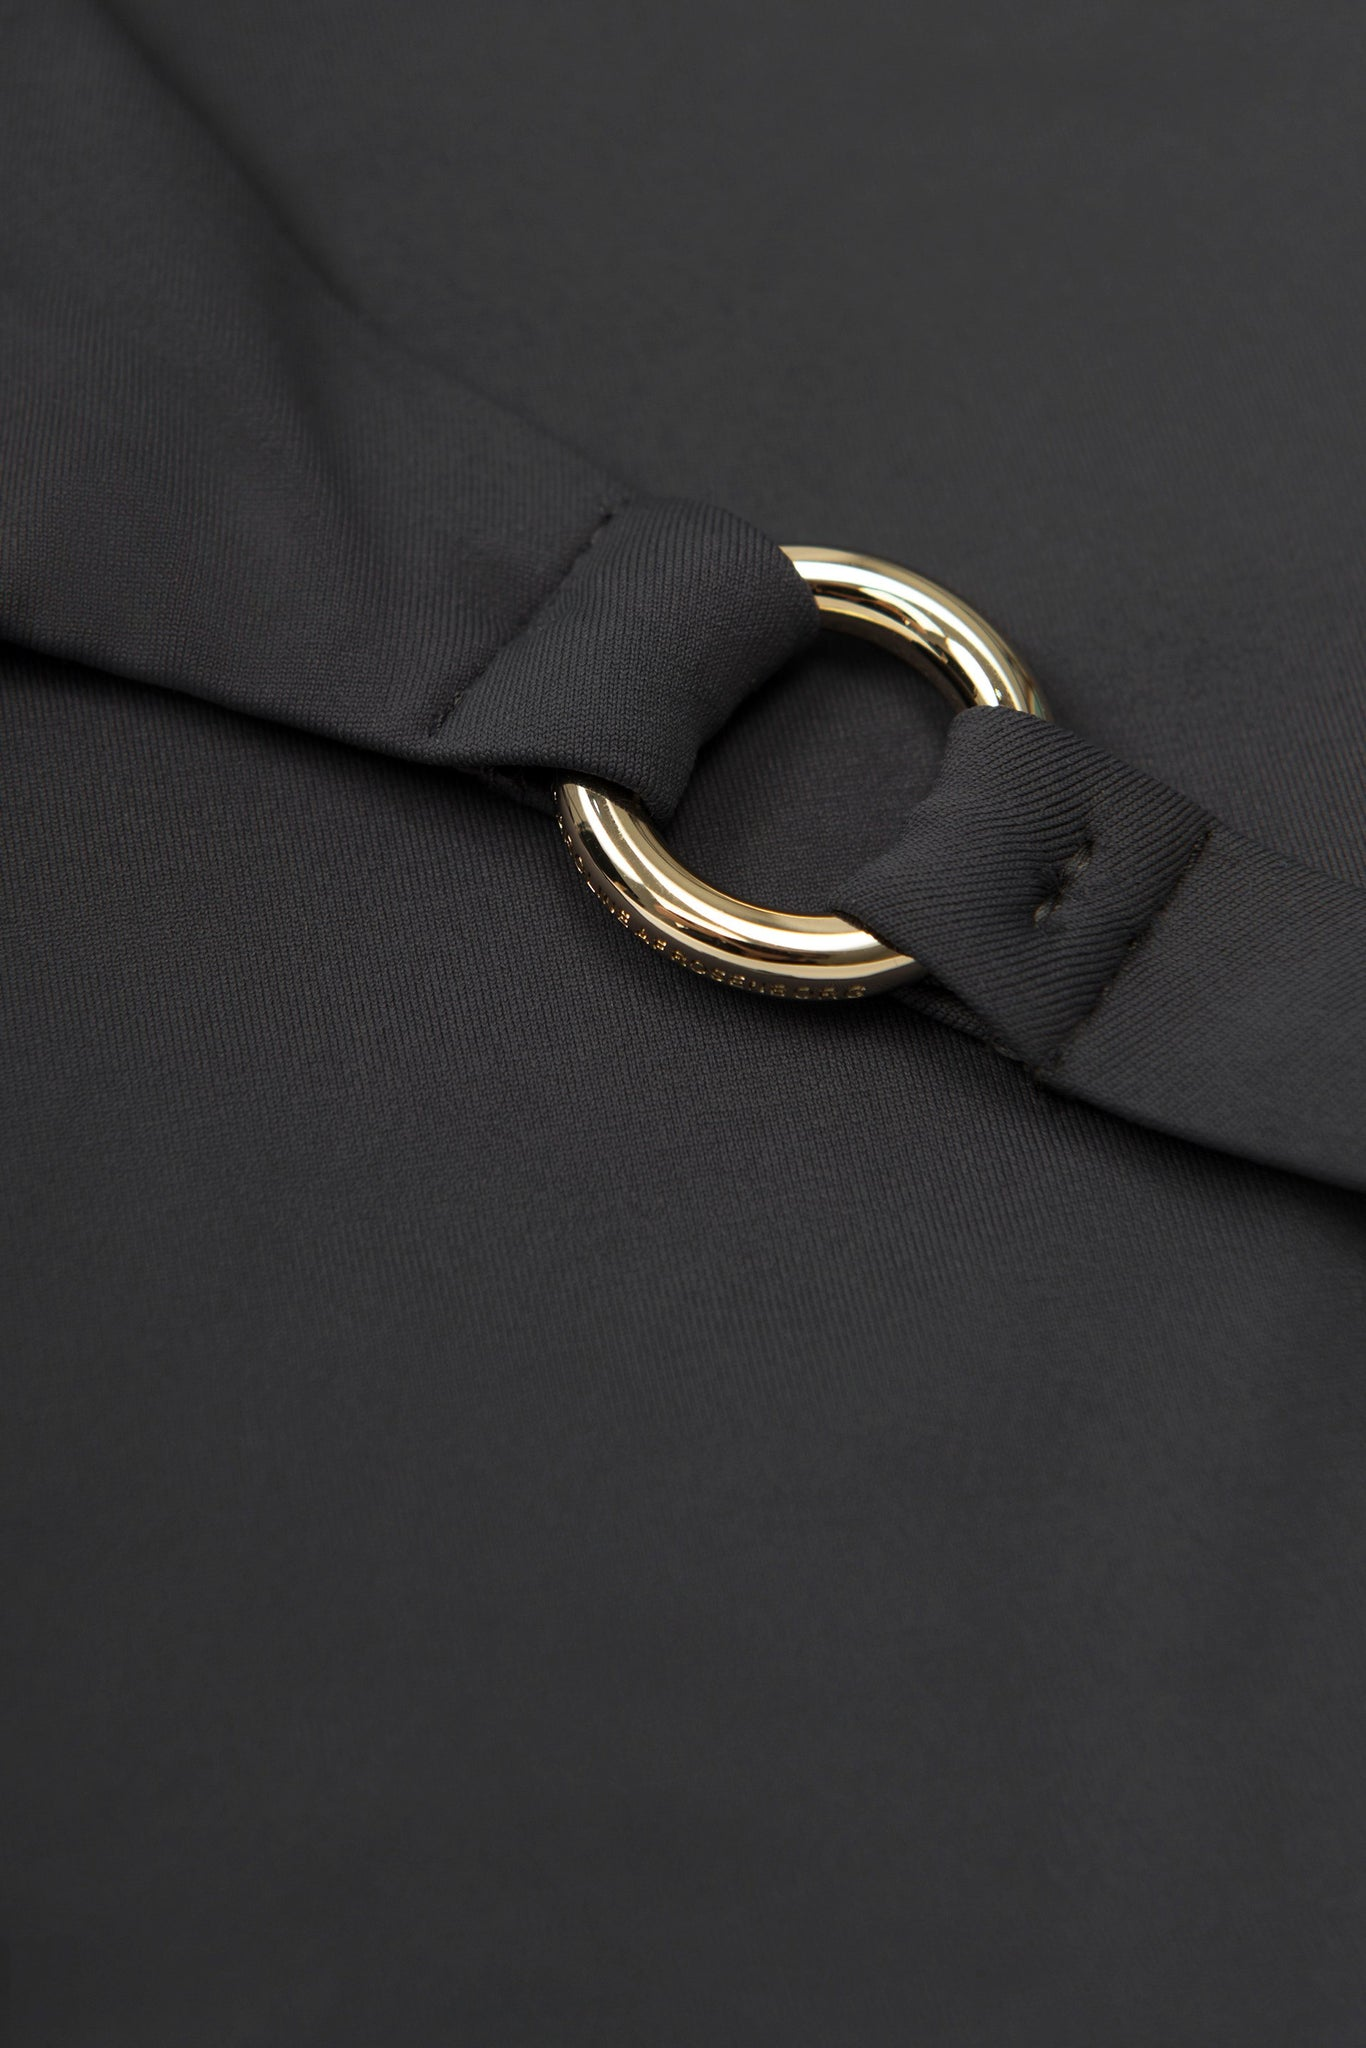 detail of ring bikini in black grey charcoal by Caroline af Rosenborg